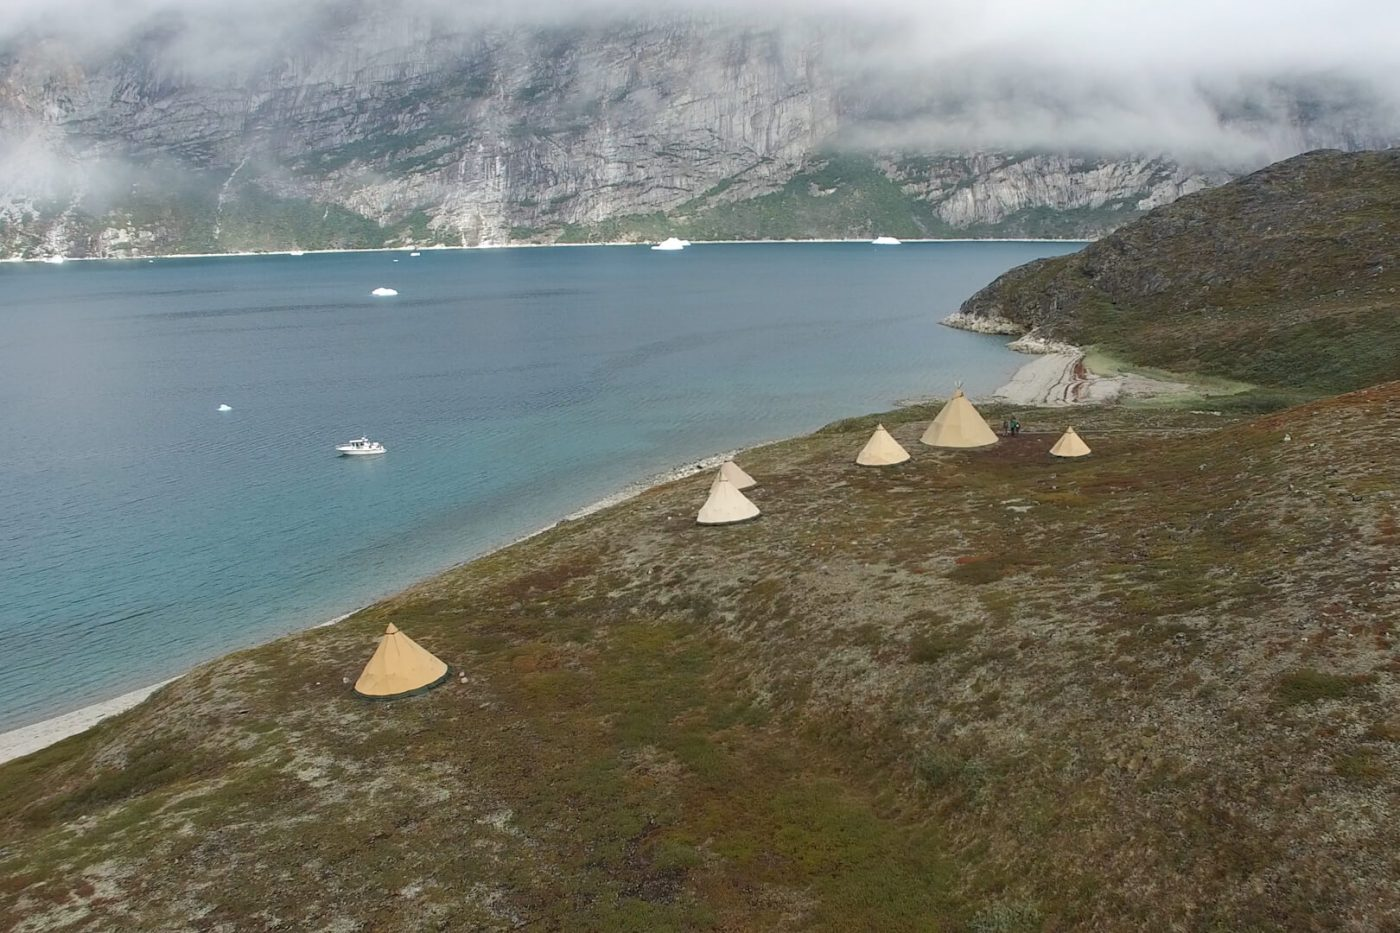 Camp at the waterfront viewed from above. Photo by Arctic Nomad